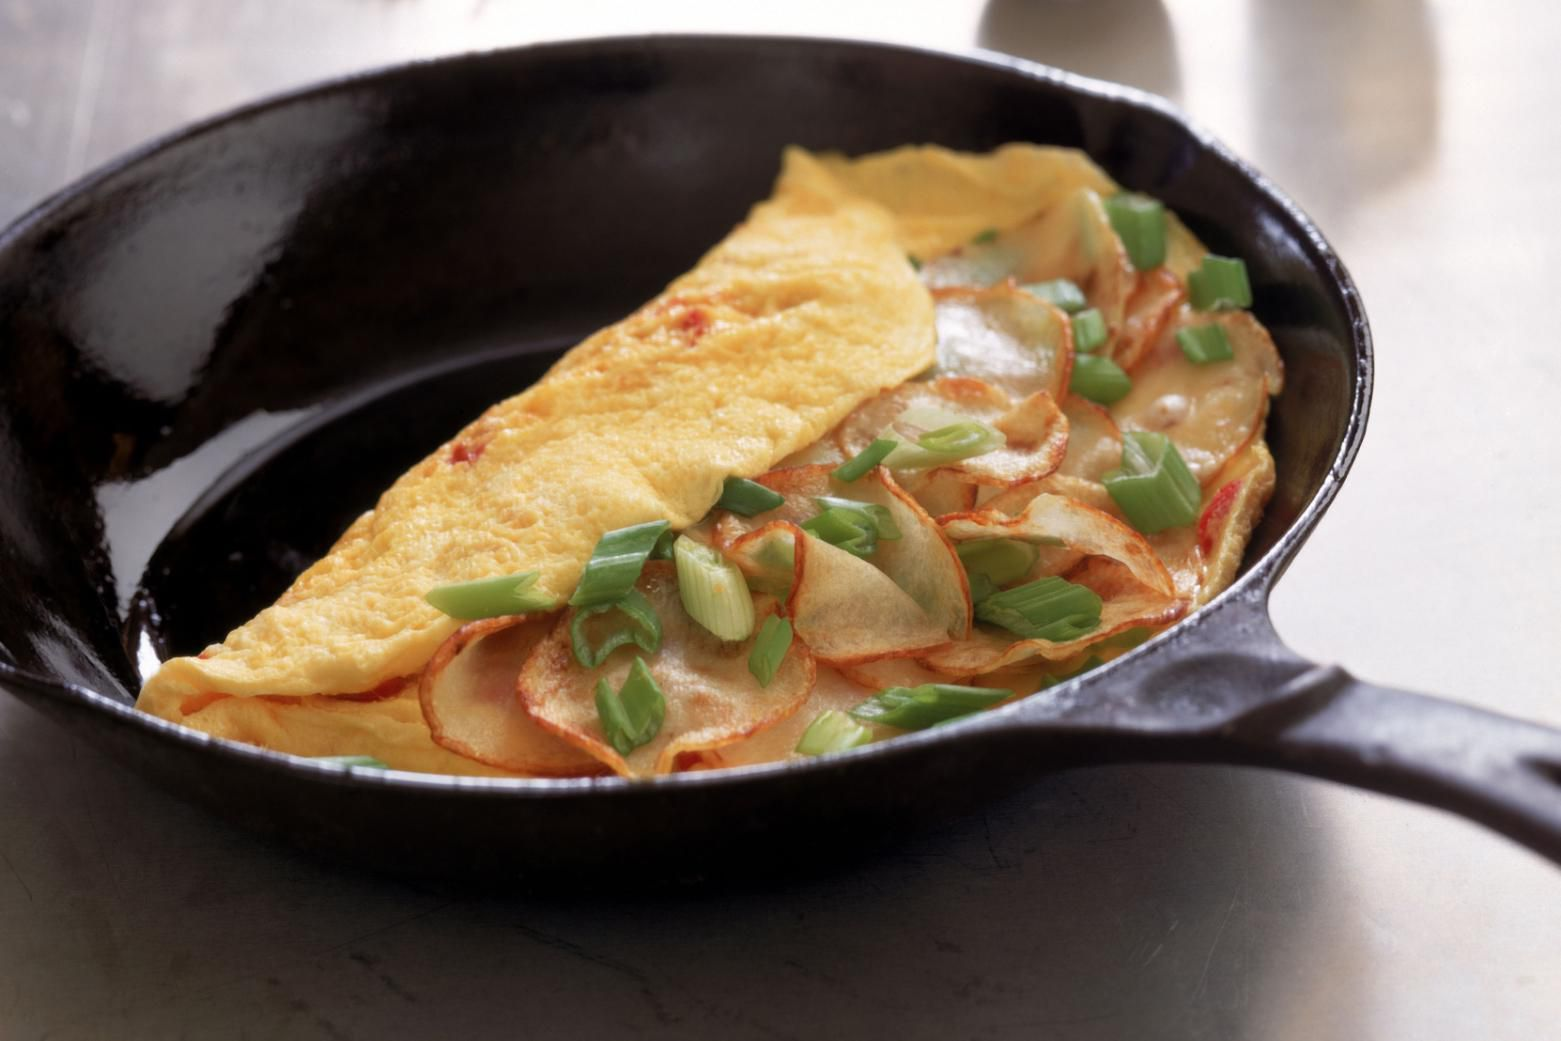 French omelette with ham, cheese, and green onions